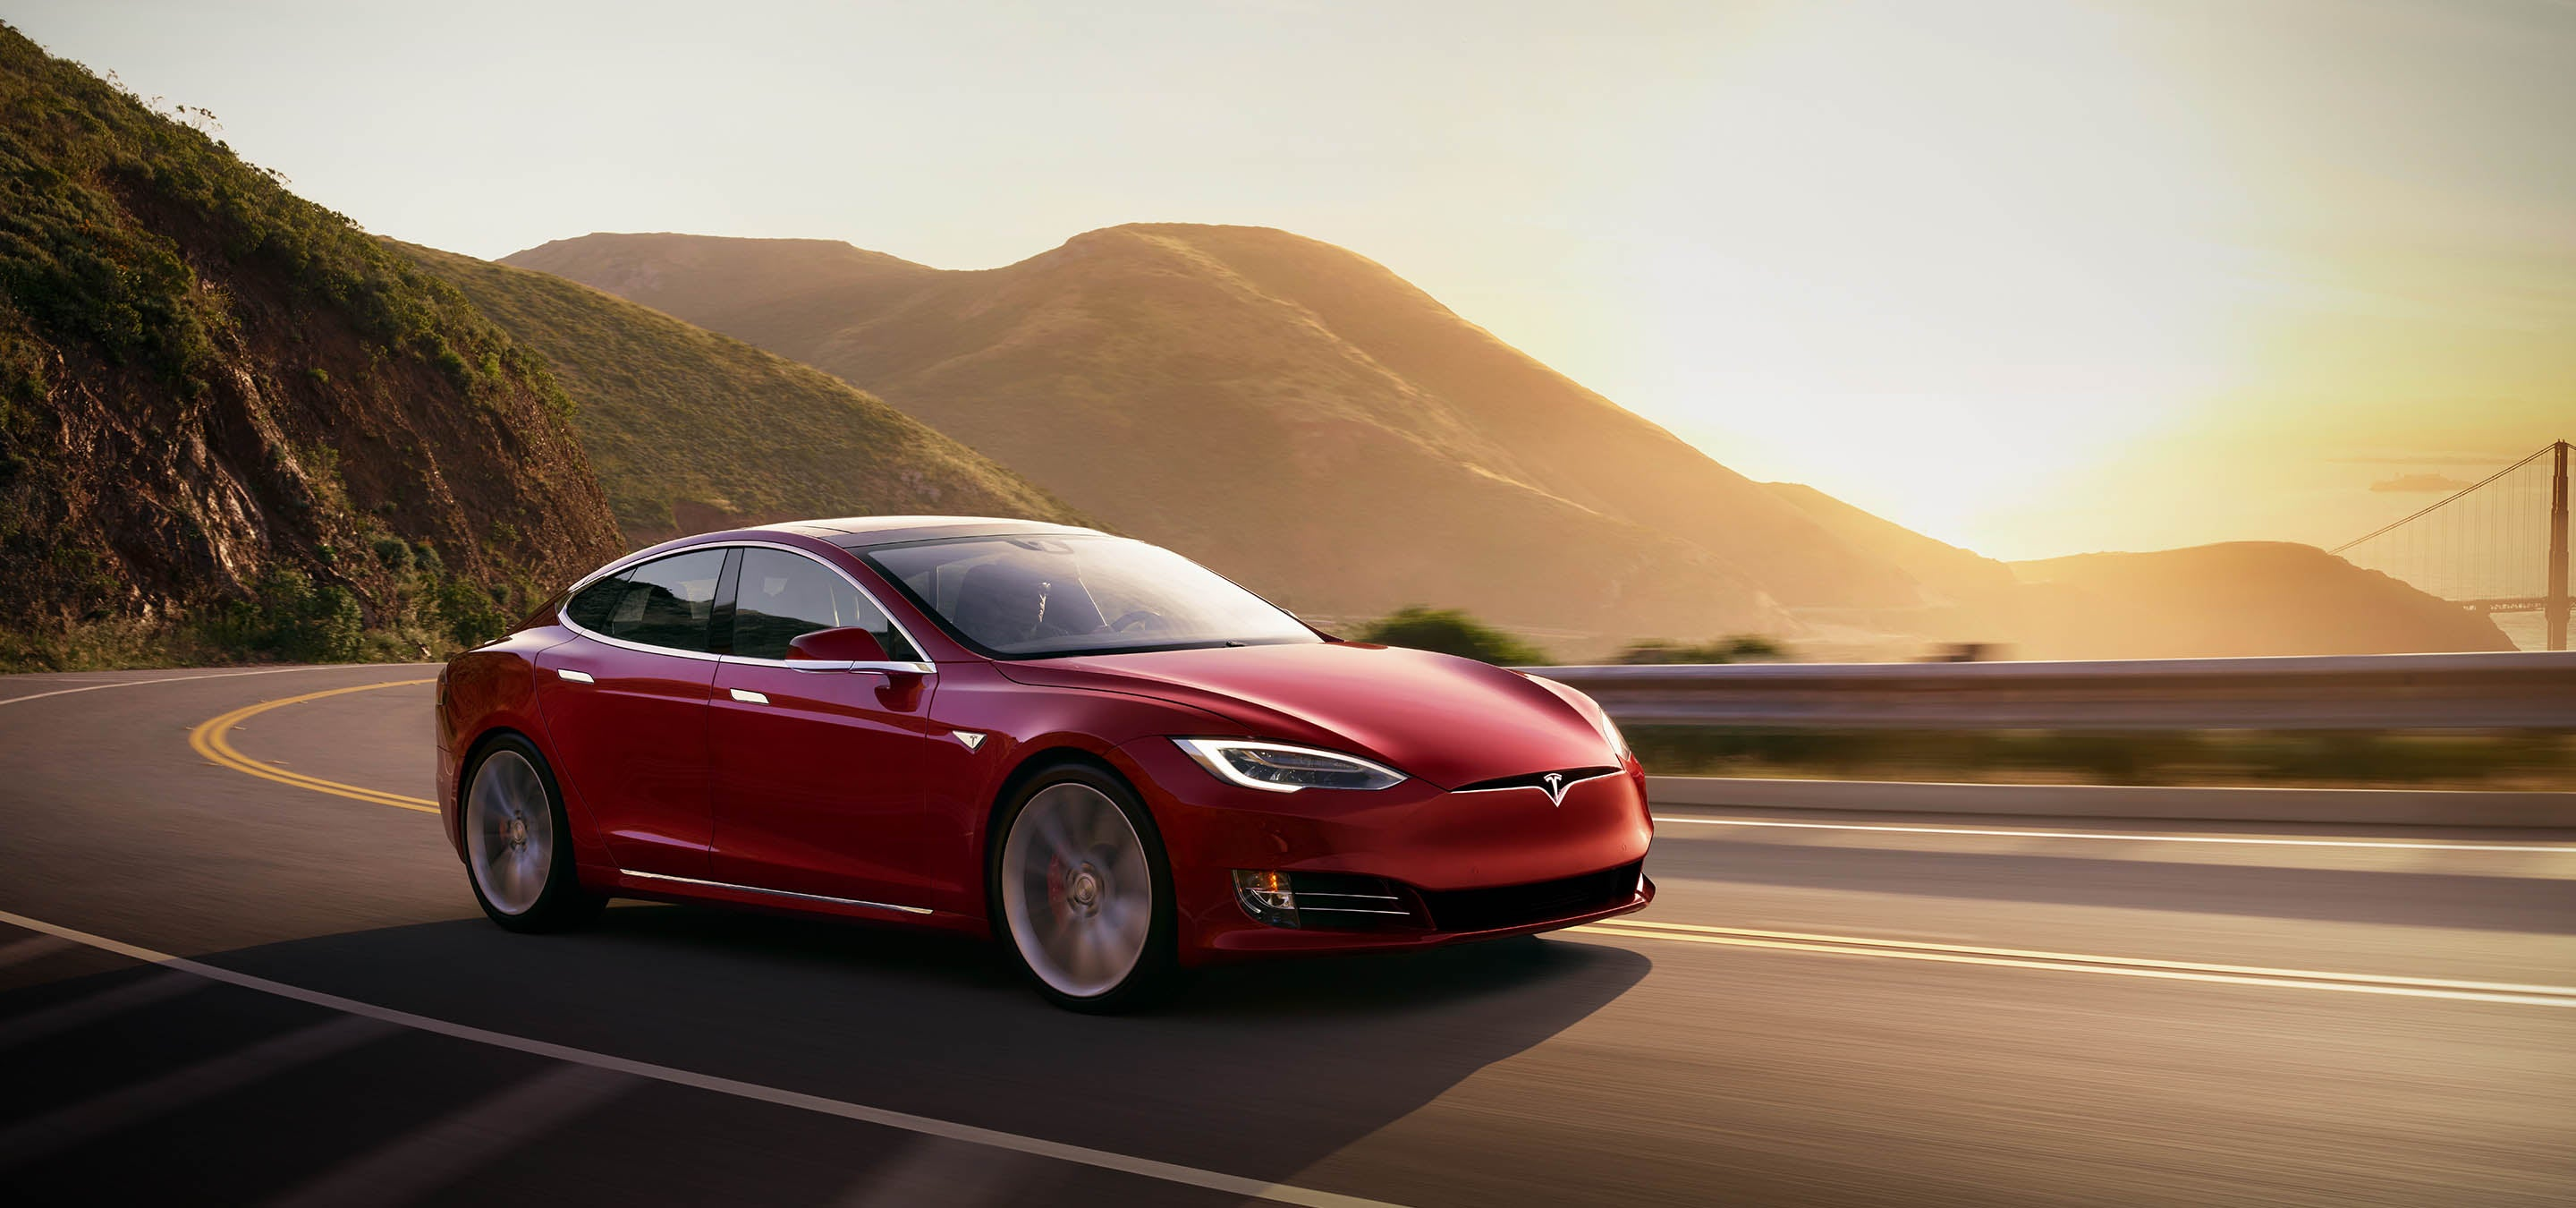 Tesla Again Cutting Price of Model S, Musk Says  image